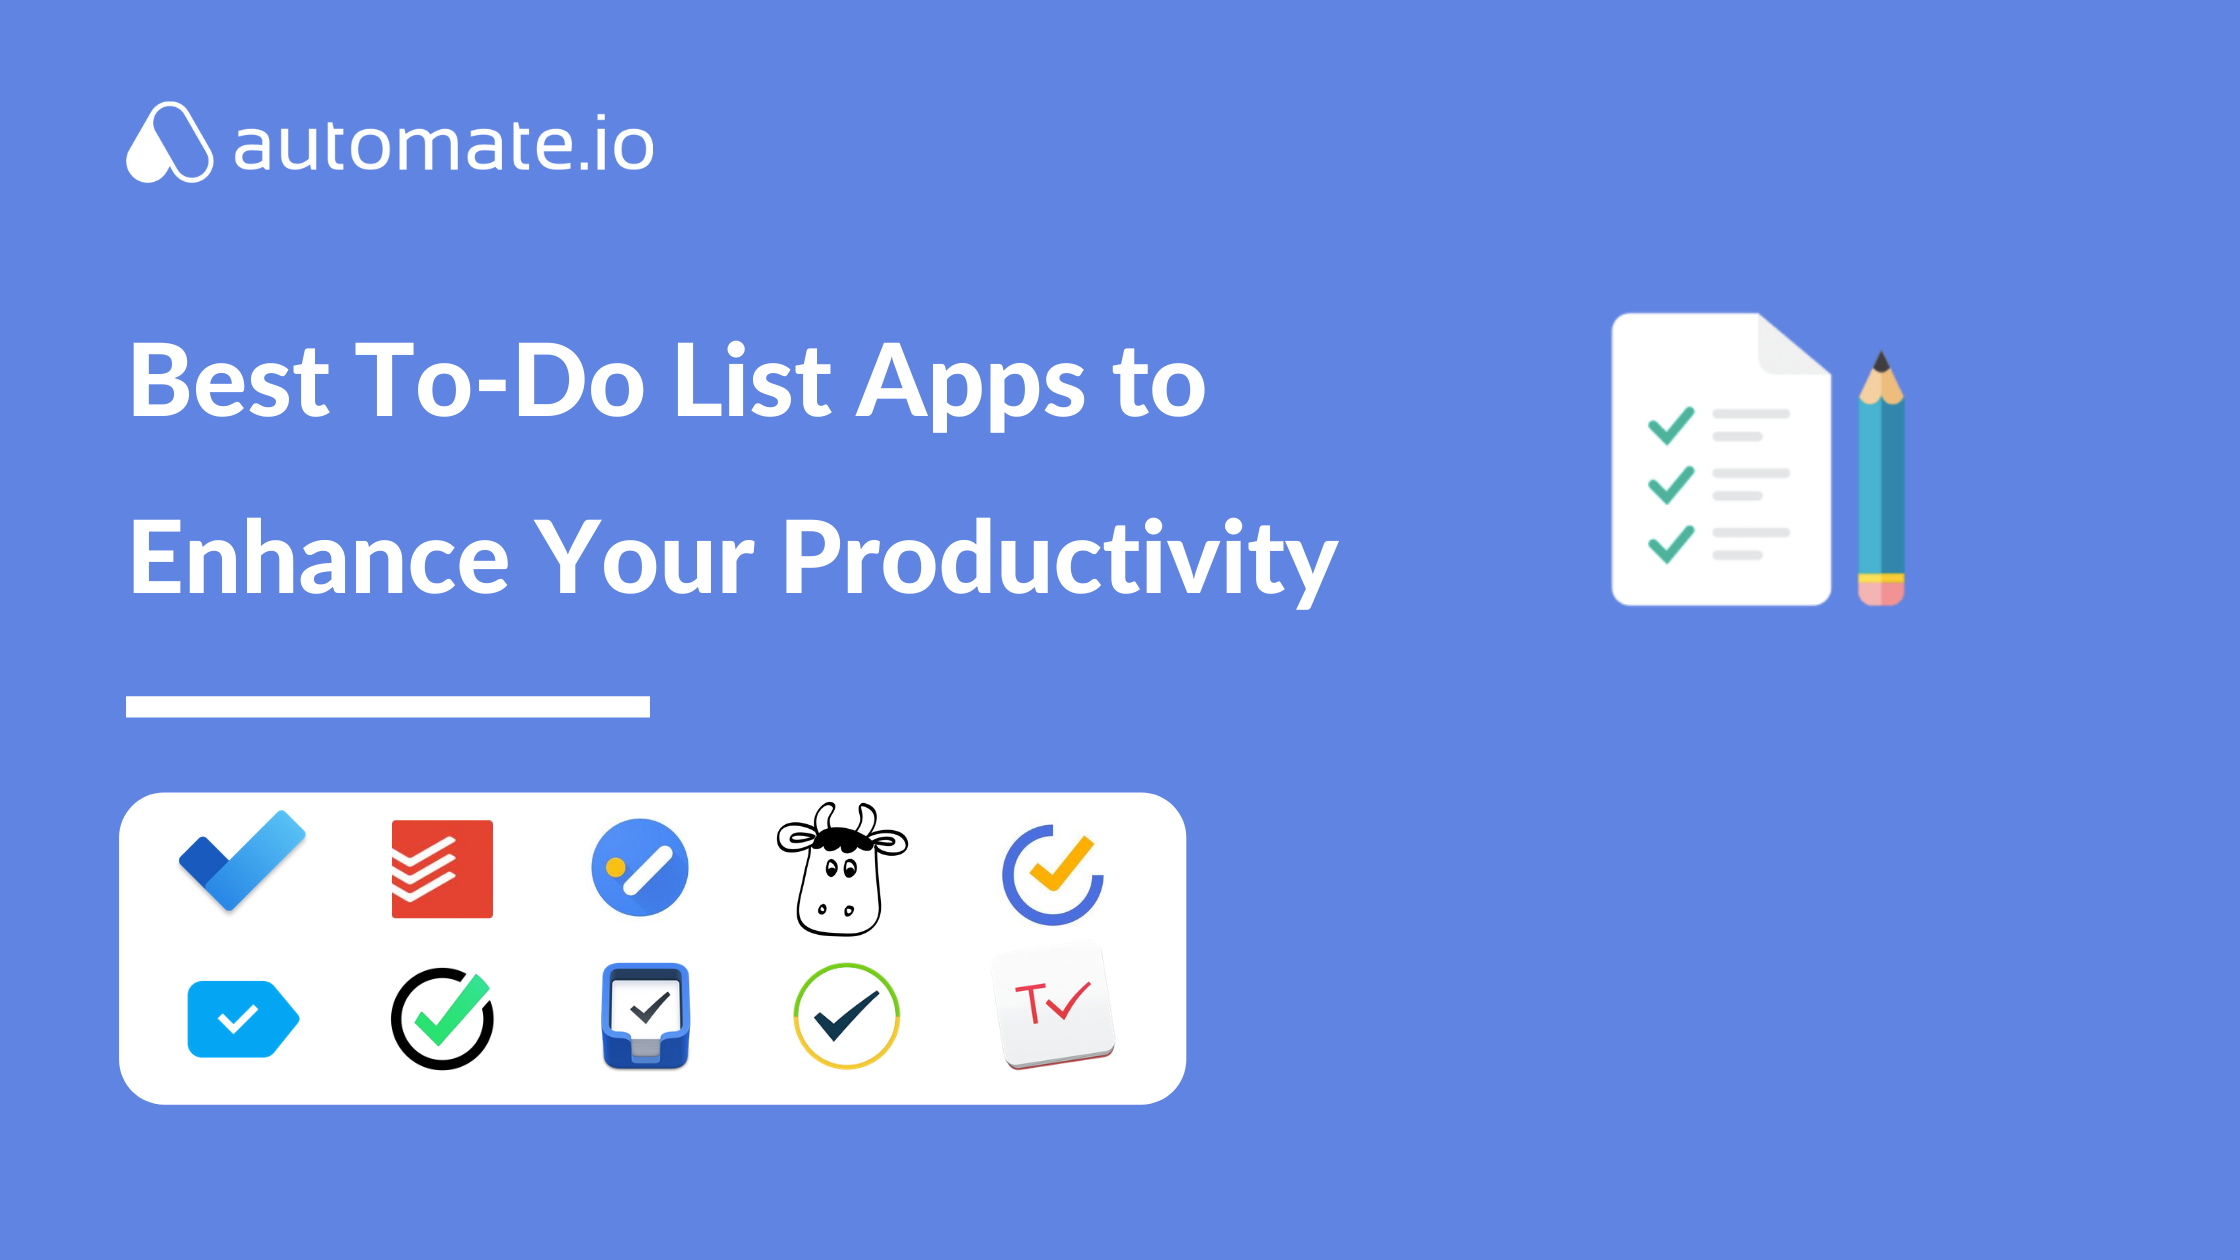 Best To-Do List apps cover